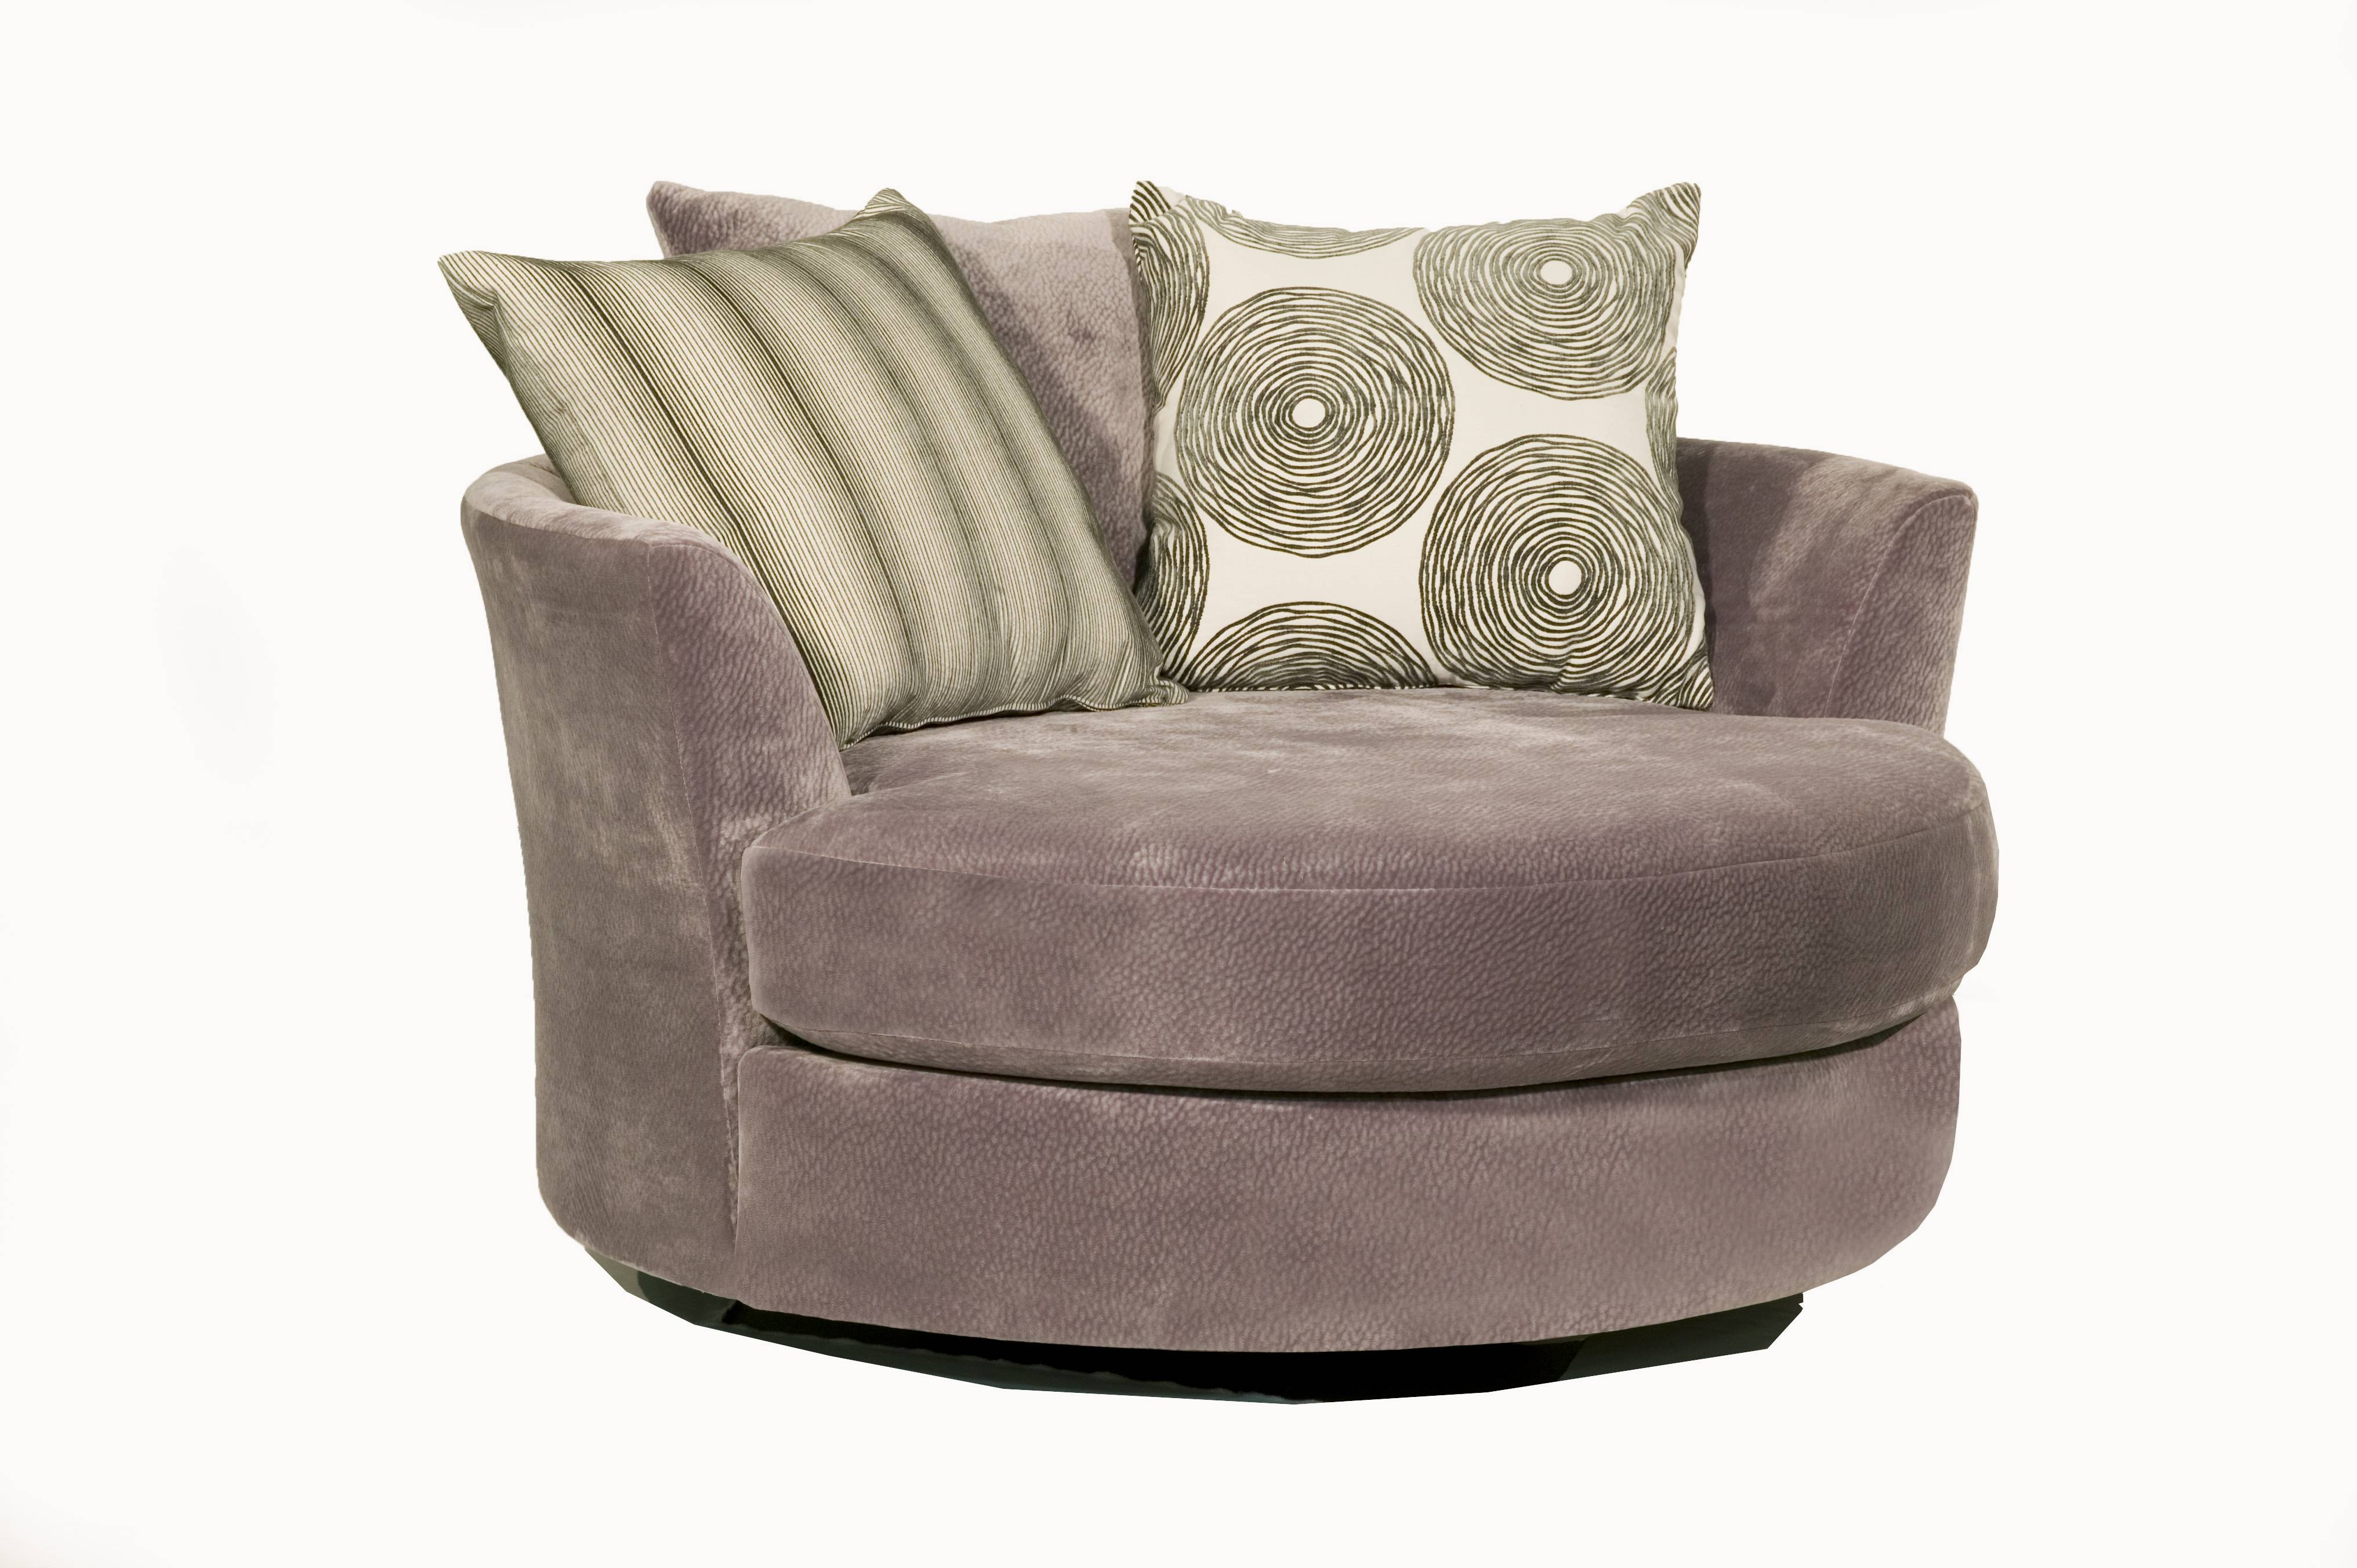 Sofas Center : Round Sofa Chair Furniture Swivel And Oversized for Large Sofa Chairs (Image 24 of 30)